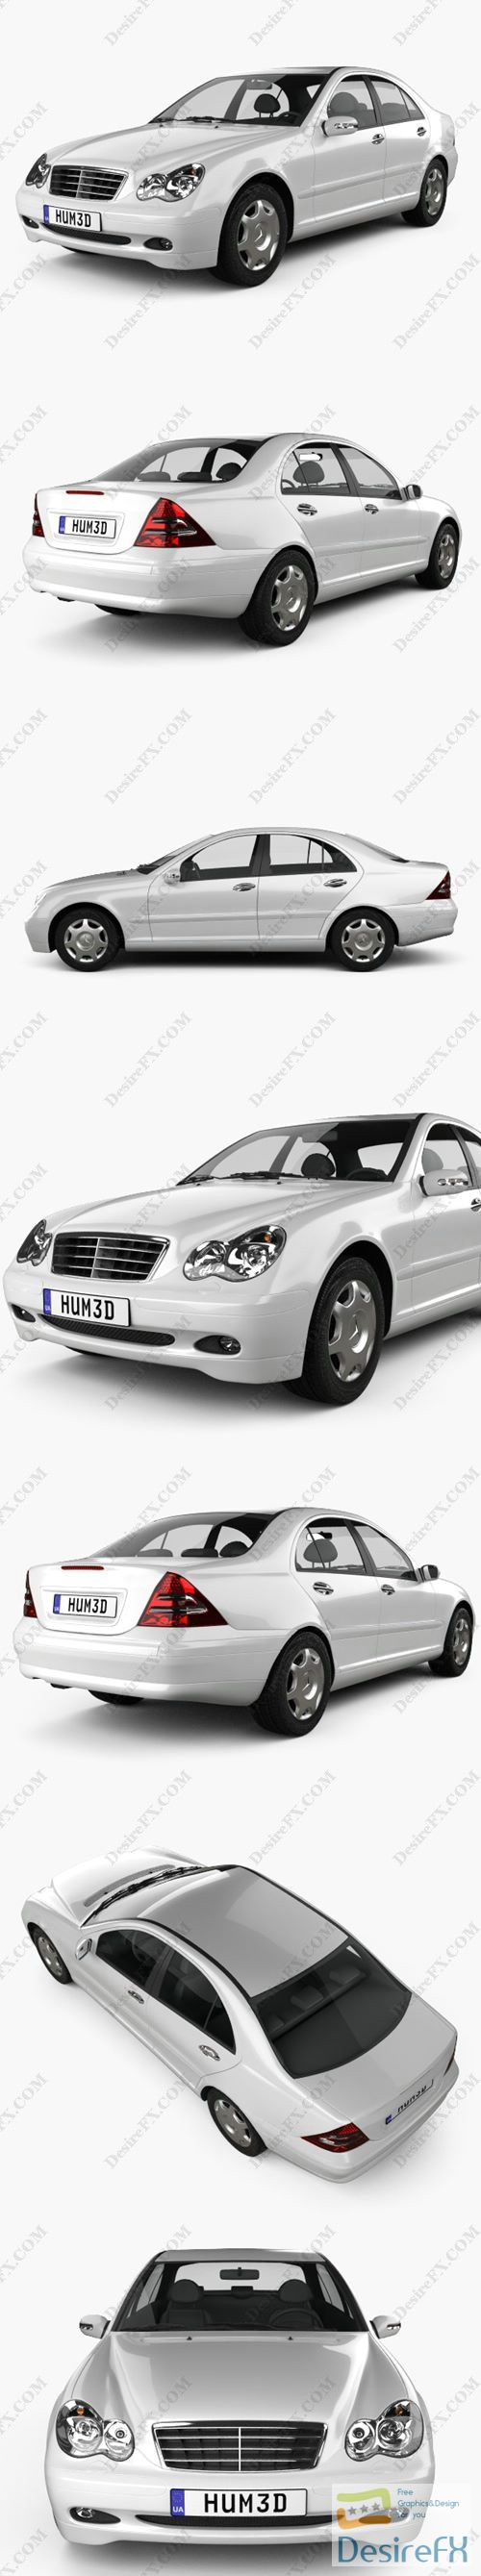 Mercedes-Benz C-class sedan 2005 3D Model